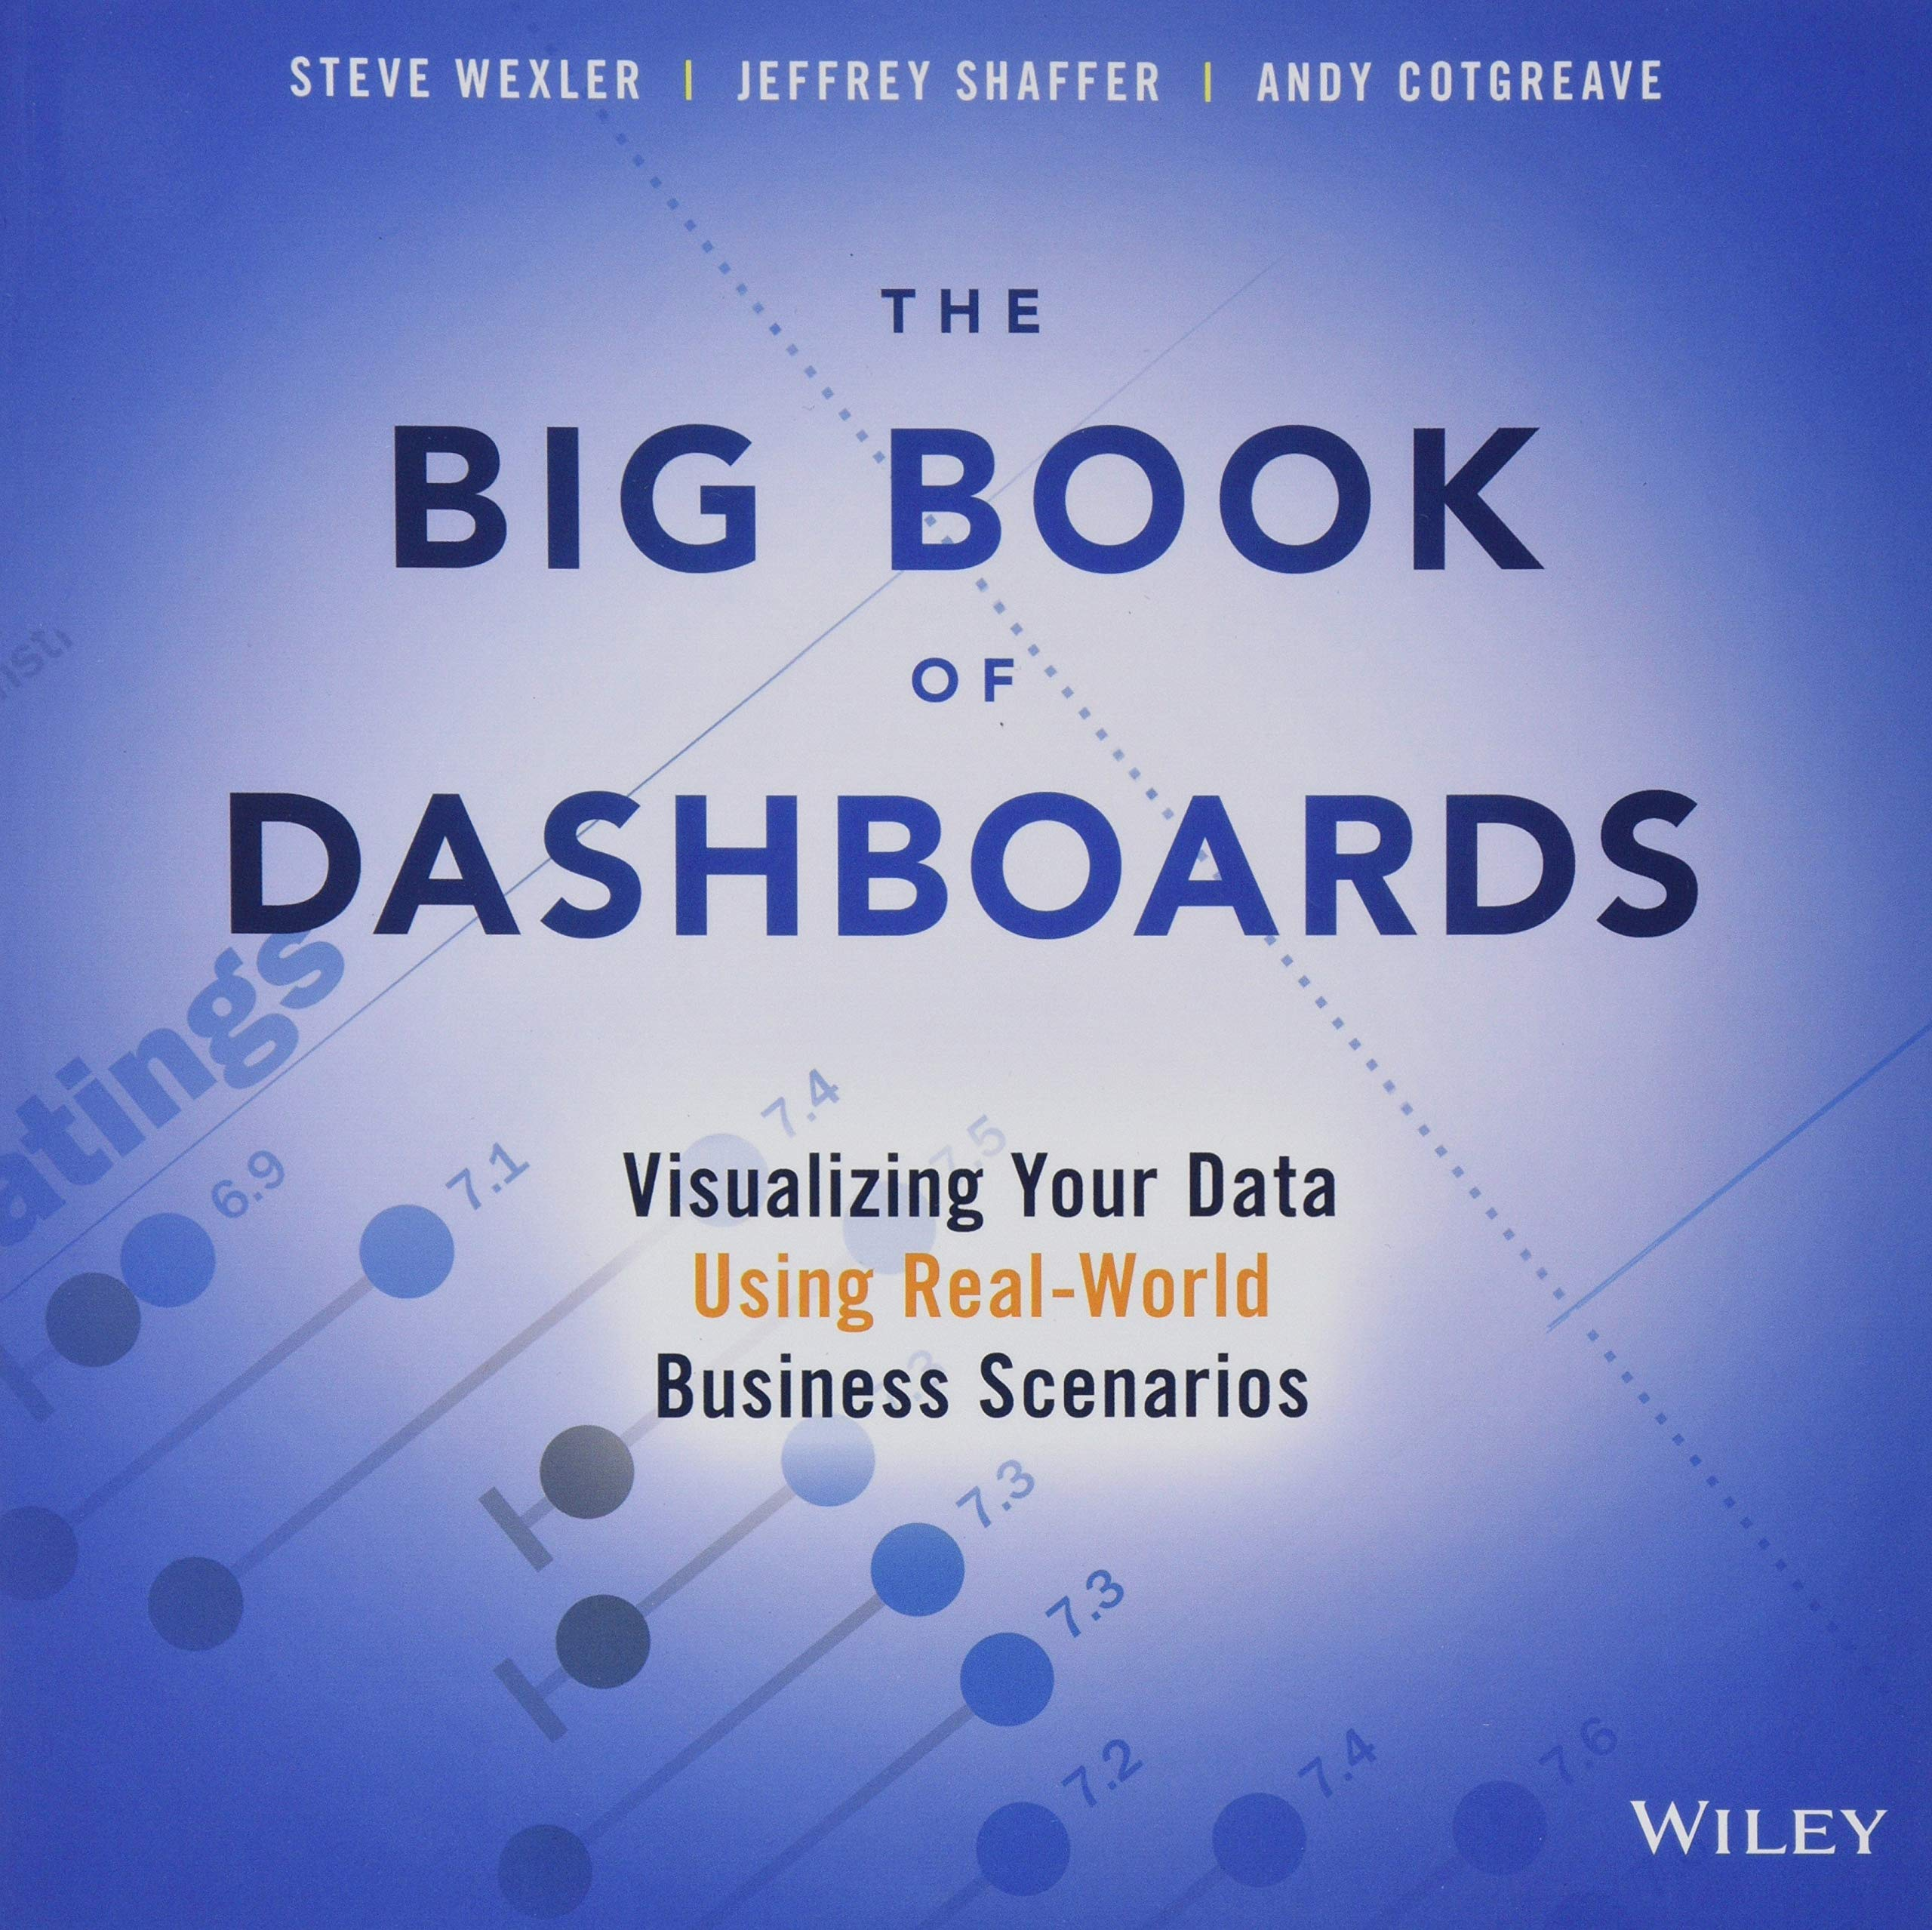 The Big Book of Dashboards: Visualizing Your Data Using Real-World Business Scenarios by WILEY